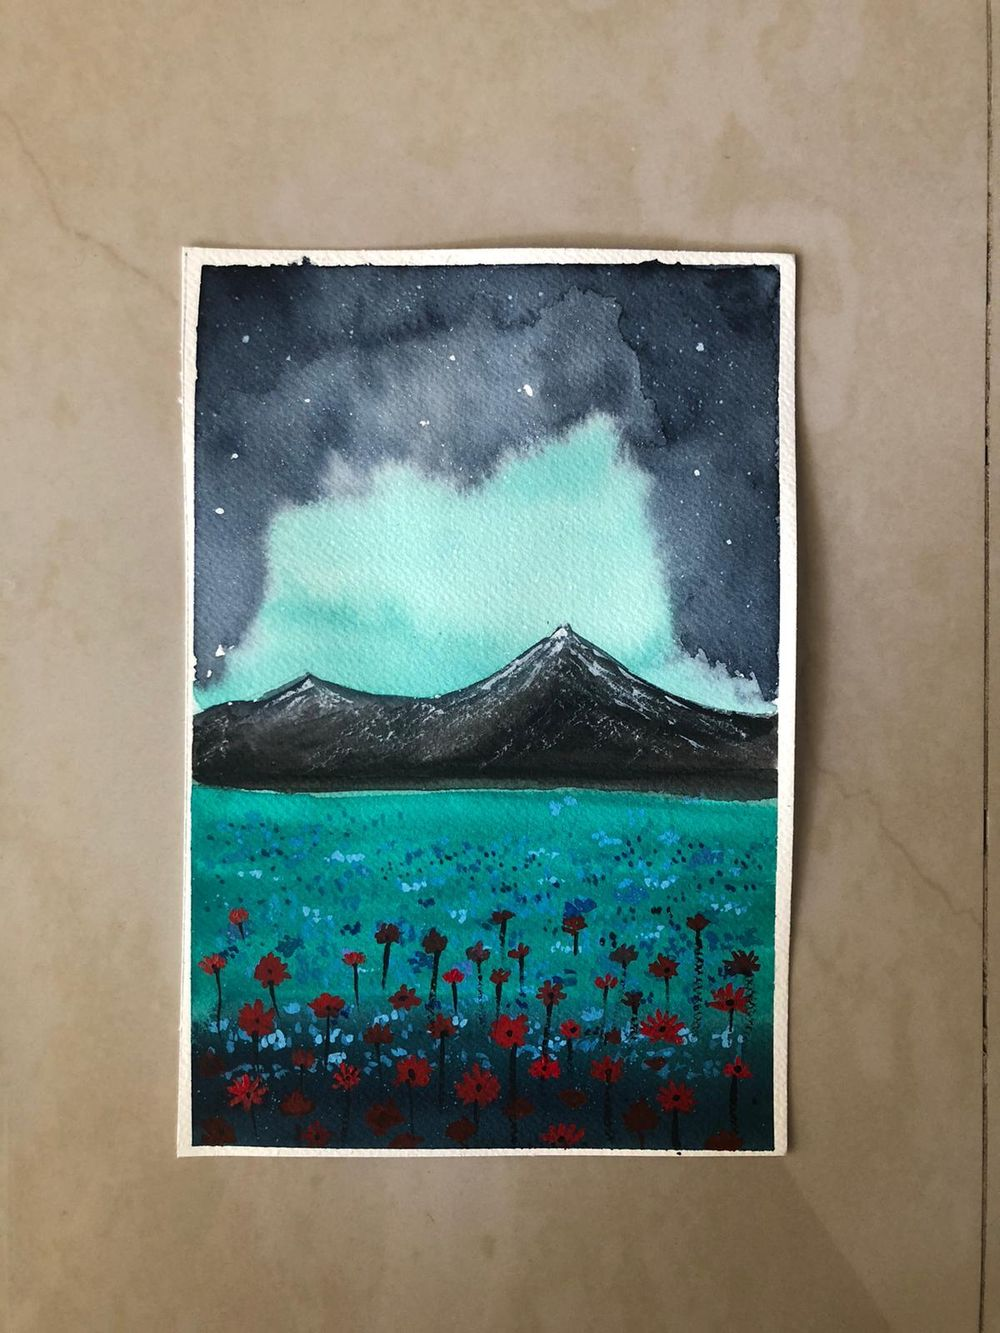 floral meadows with watercolor - image 1 - student project